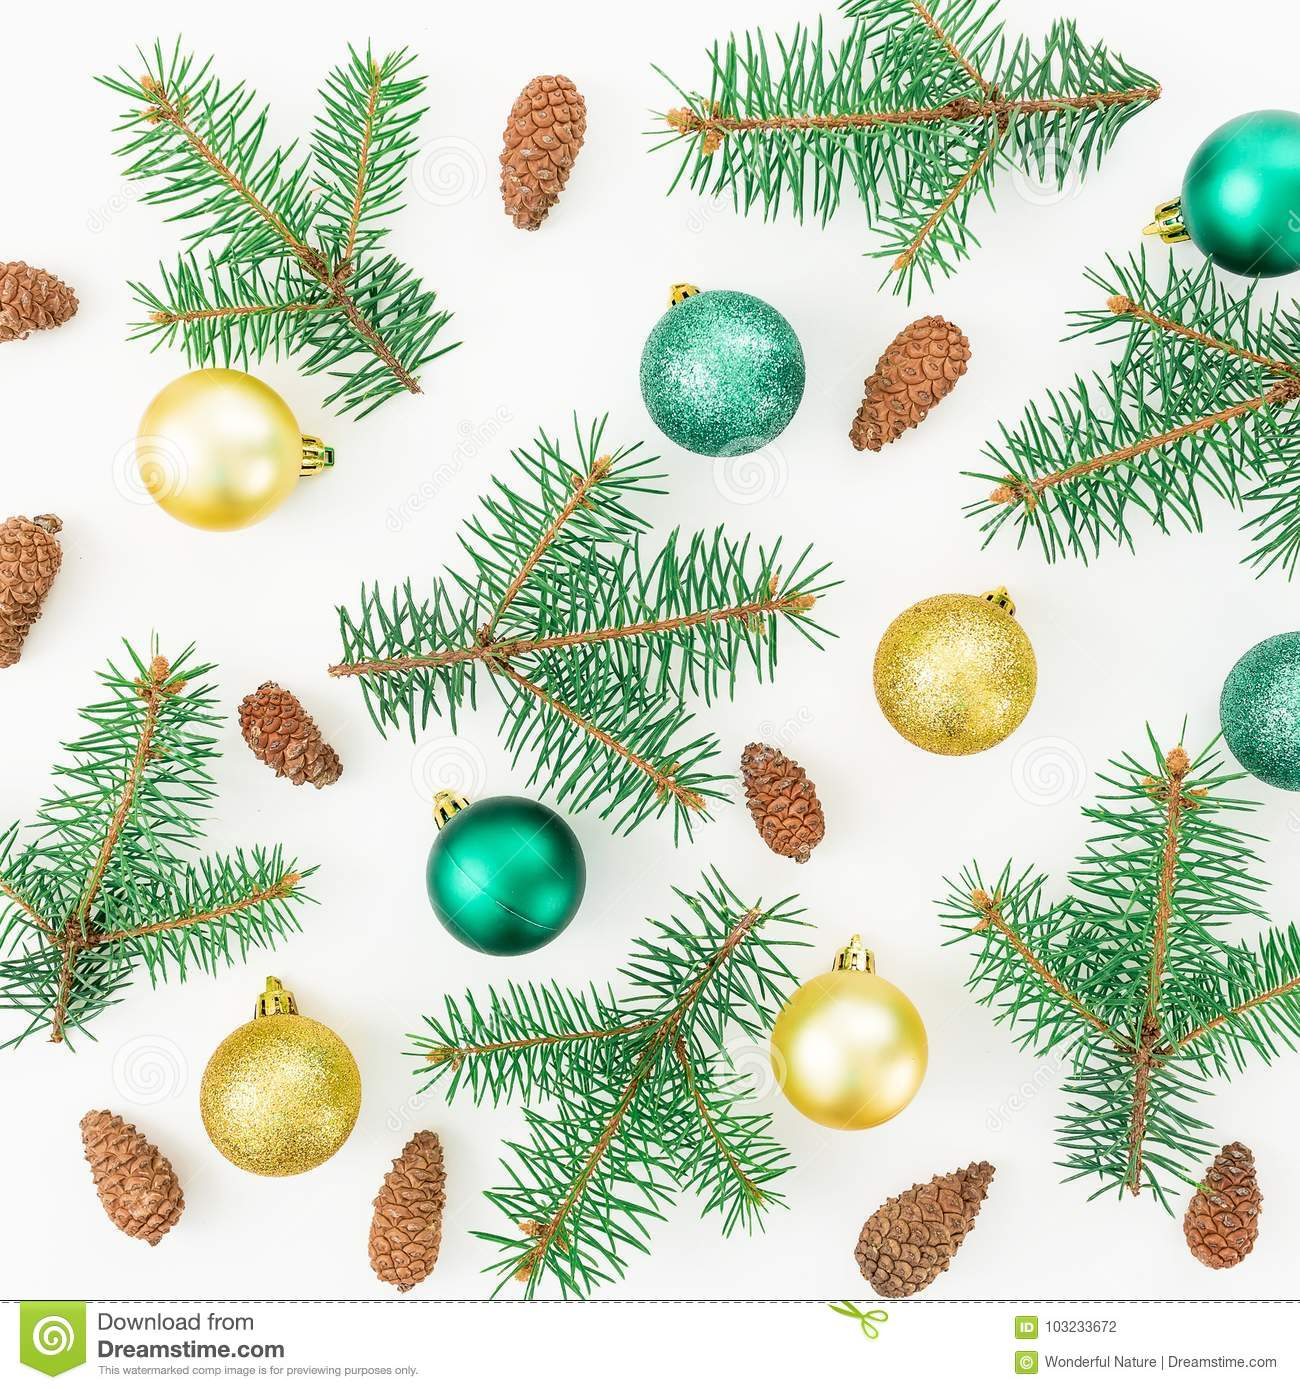 Christmas pattern of winter trees, pine cones and Christmas balls on white background. New year composition. Flat lay, top view